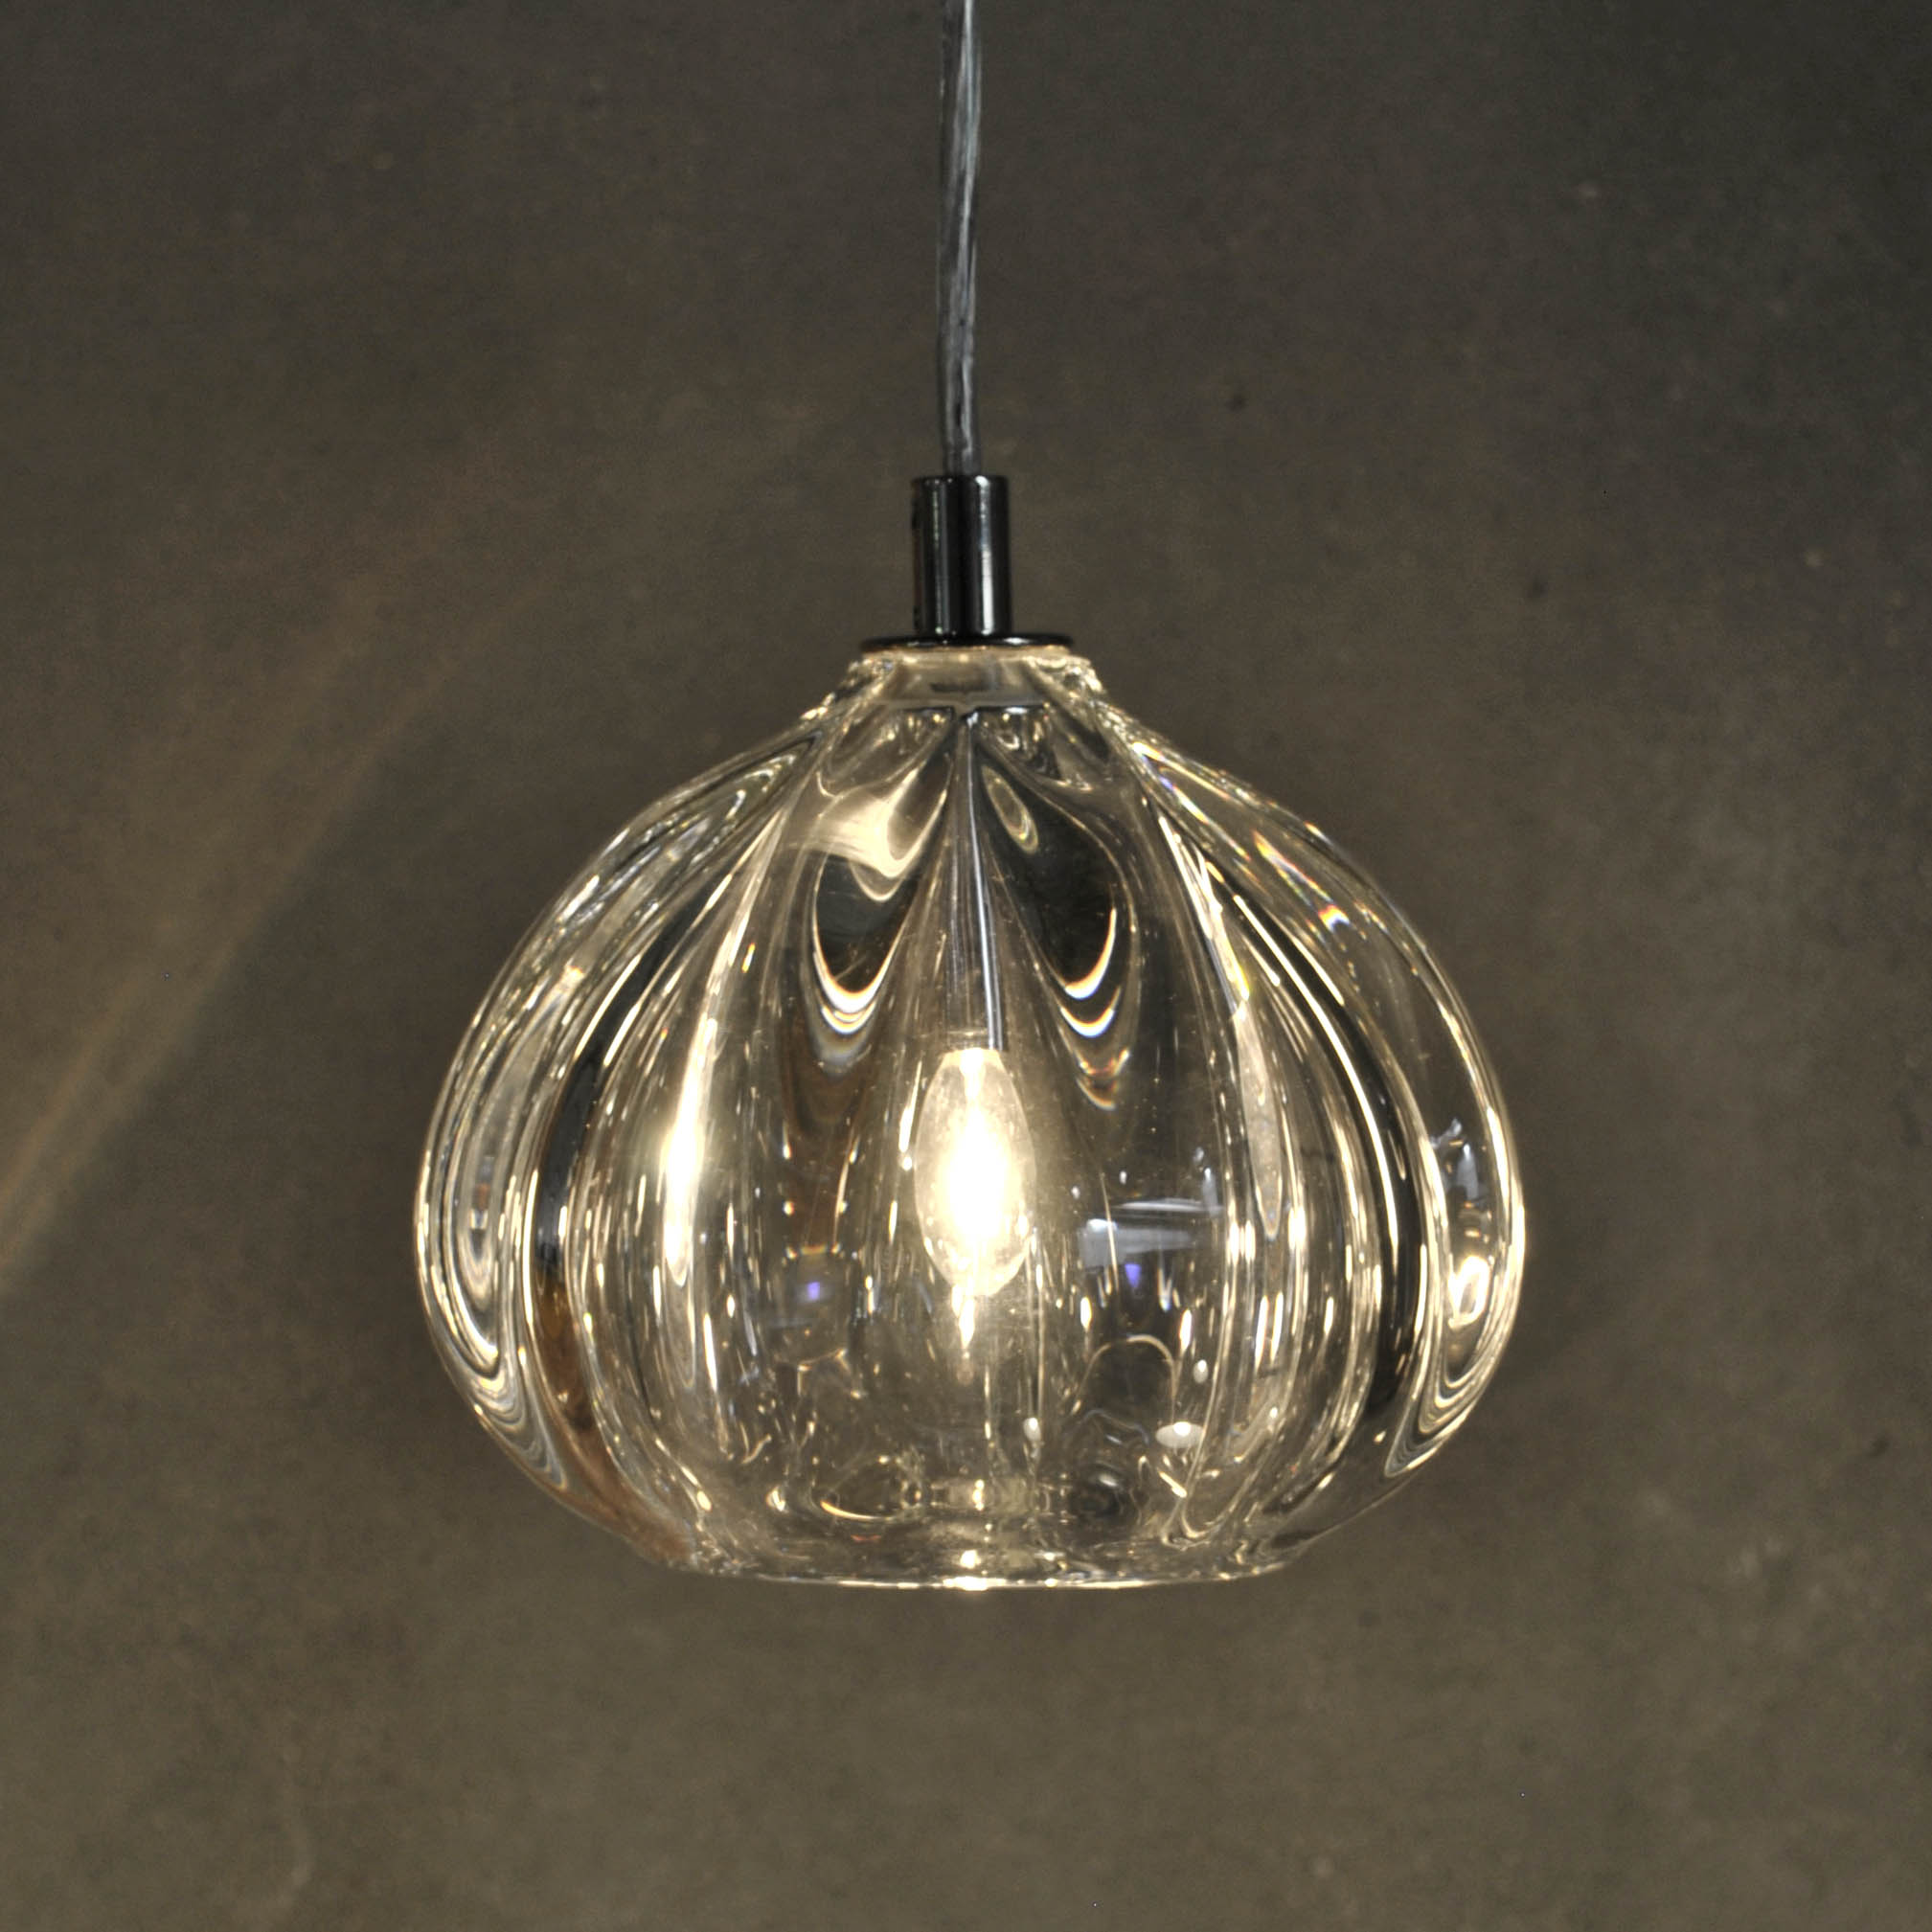 Hand Blown Glass Lighting. Thick Clear Barnacle Urchin Pendant by siemon and salazar